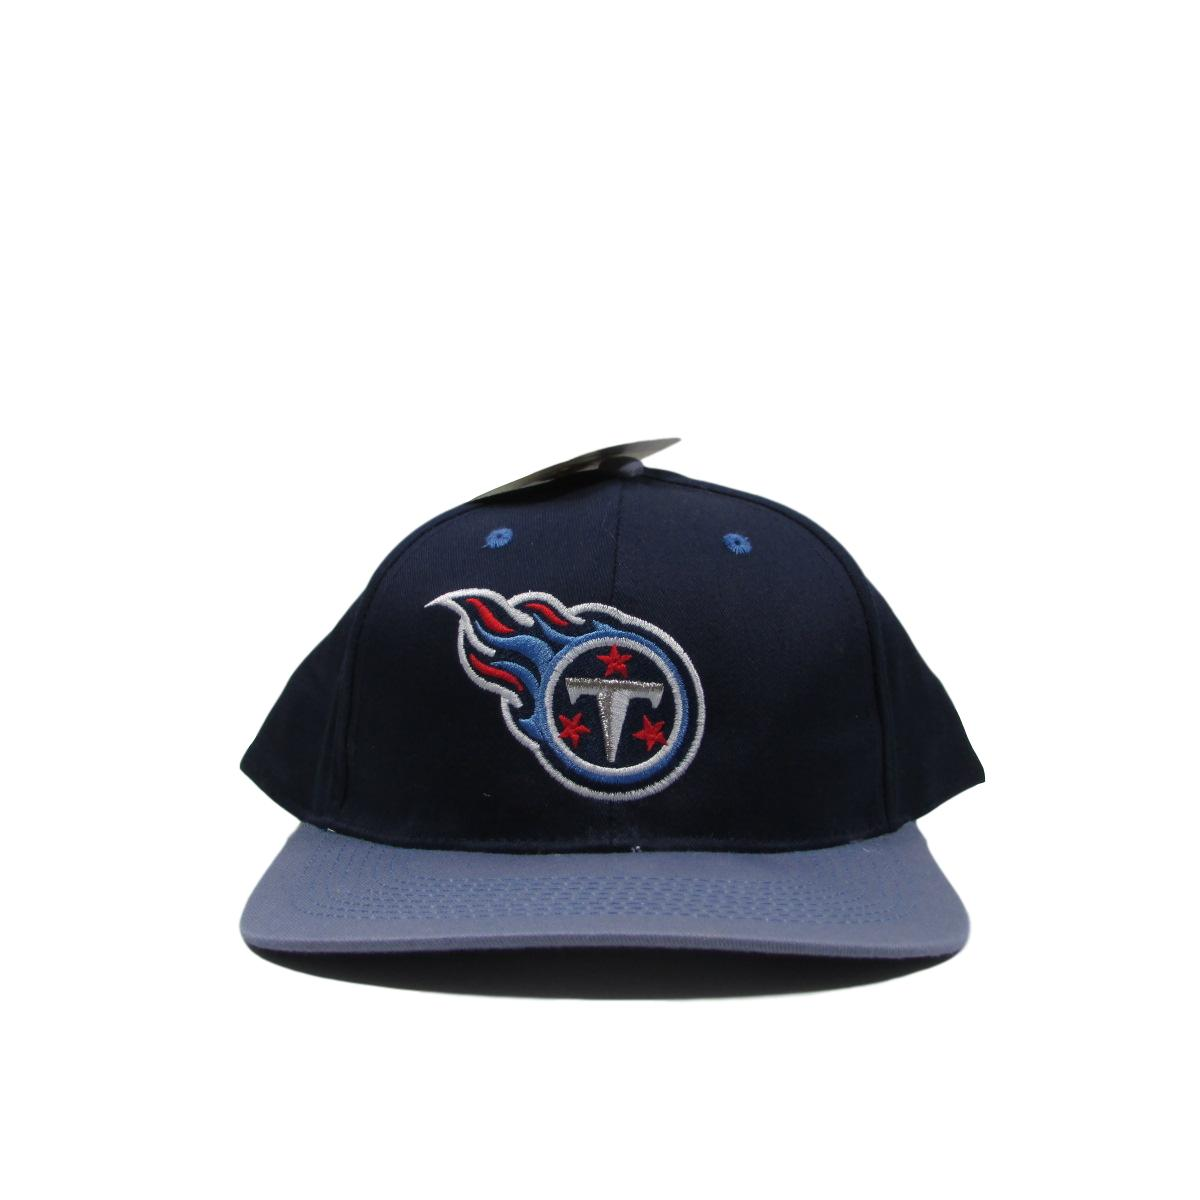 Tennessee Titans NFL Game Day Football Snapback Hat Vintage